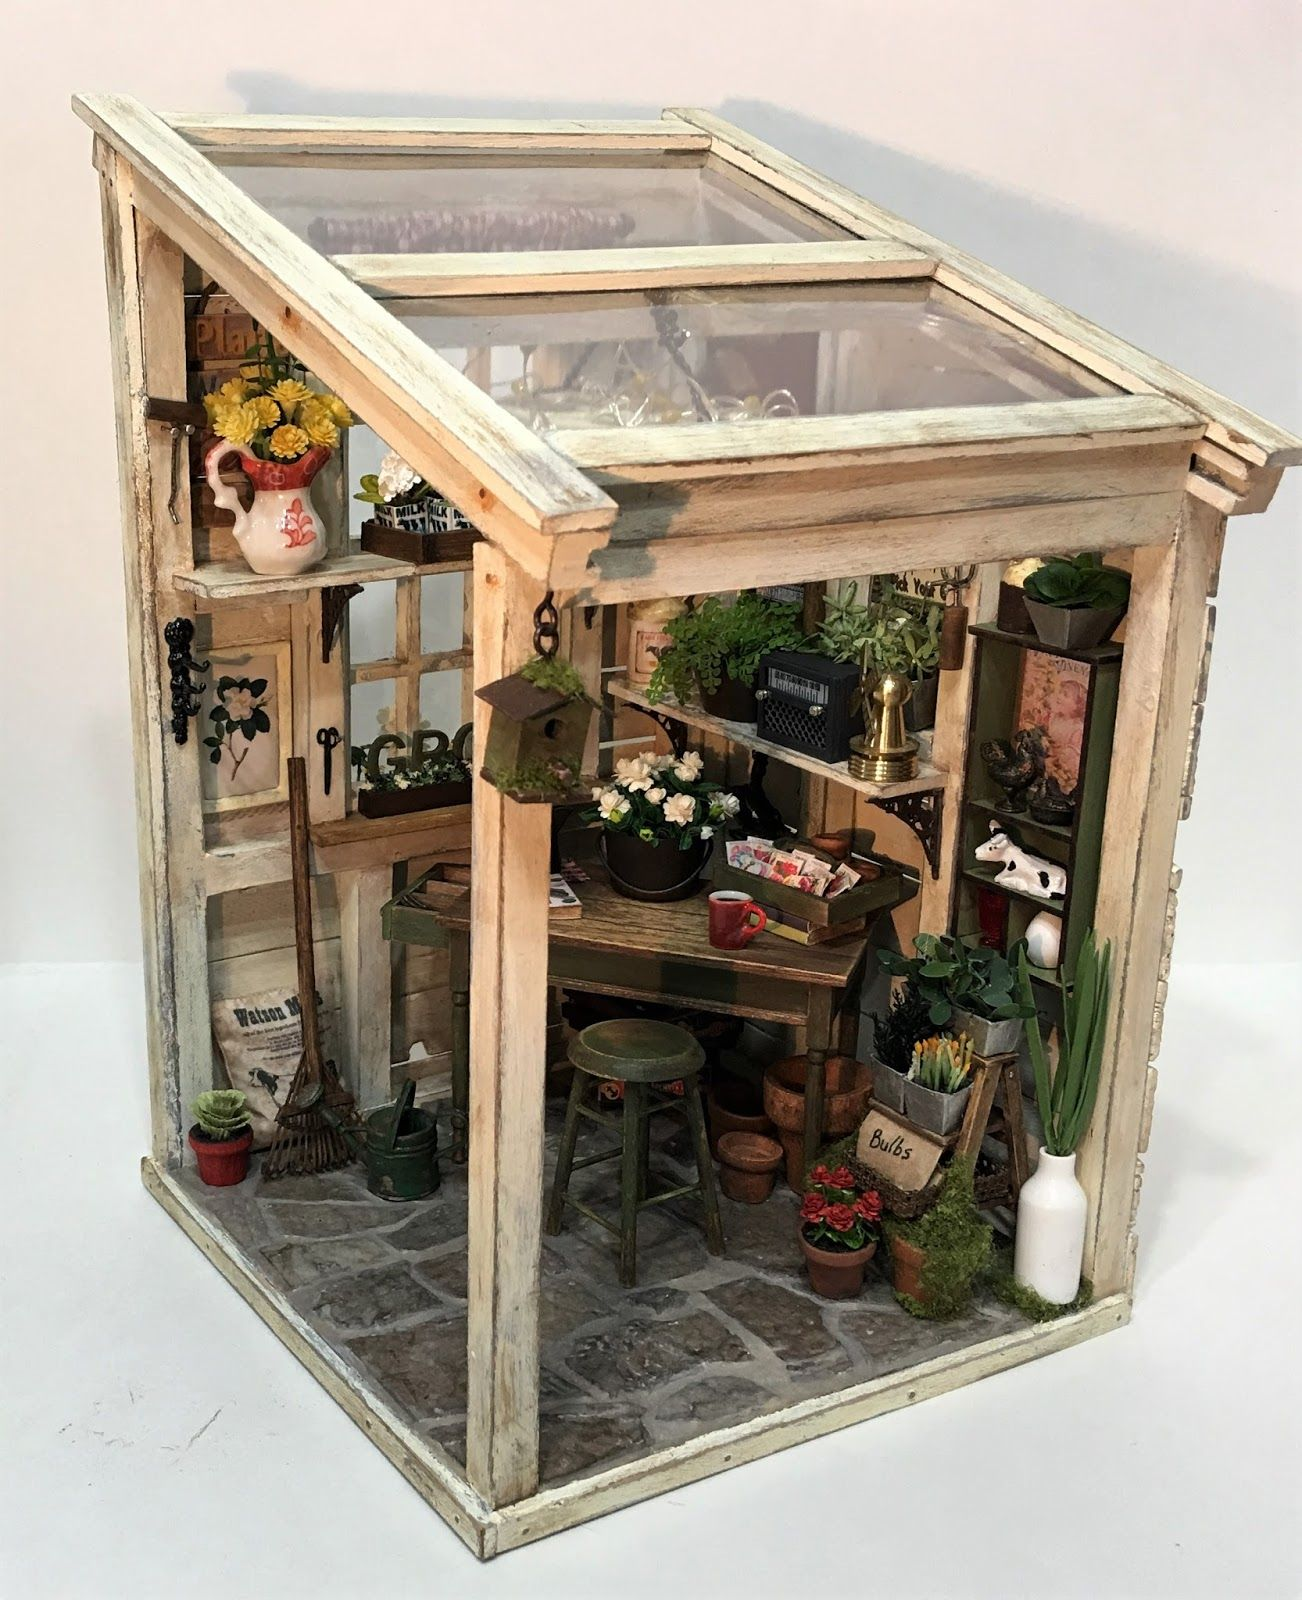 Miniature mini-greenhouse room box in 1/12 scale #miniaturekitchen